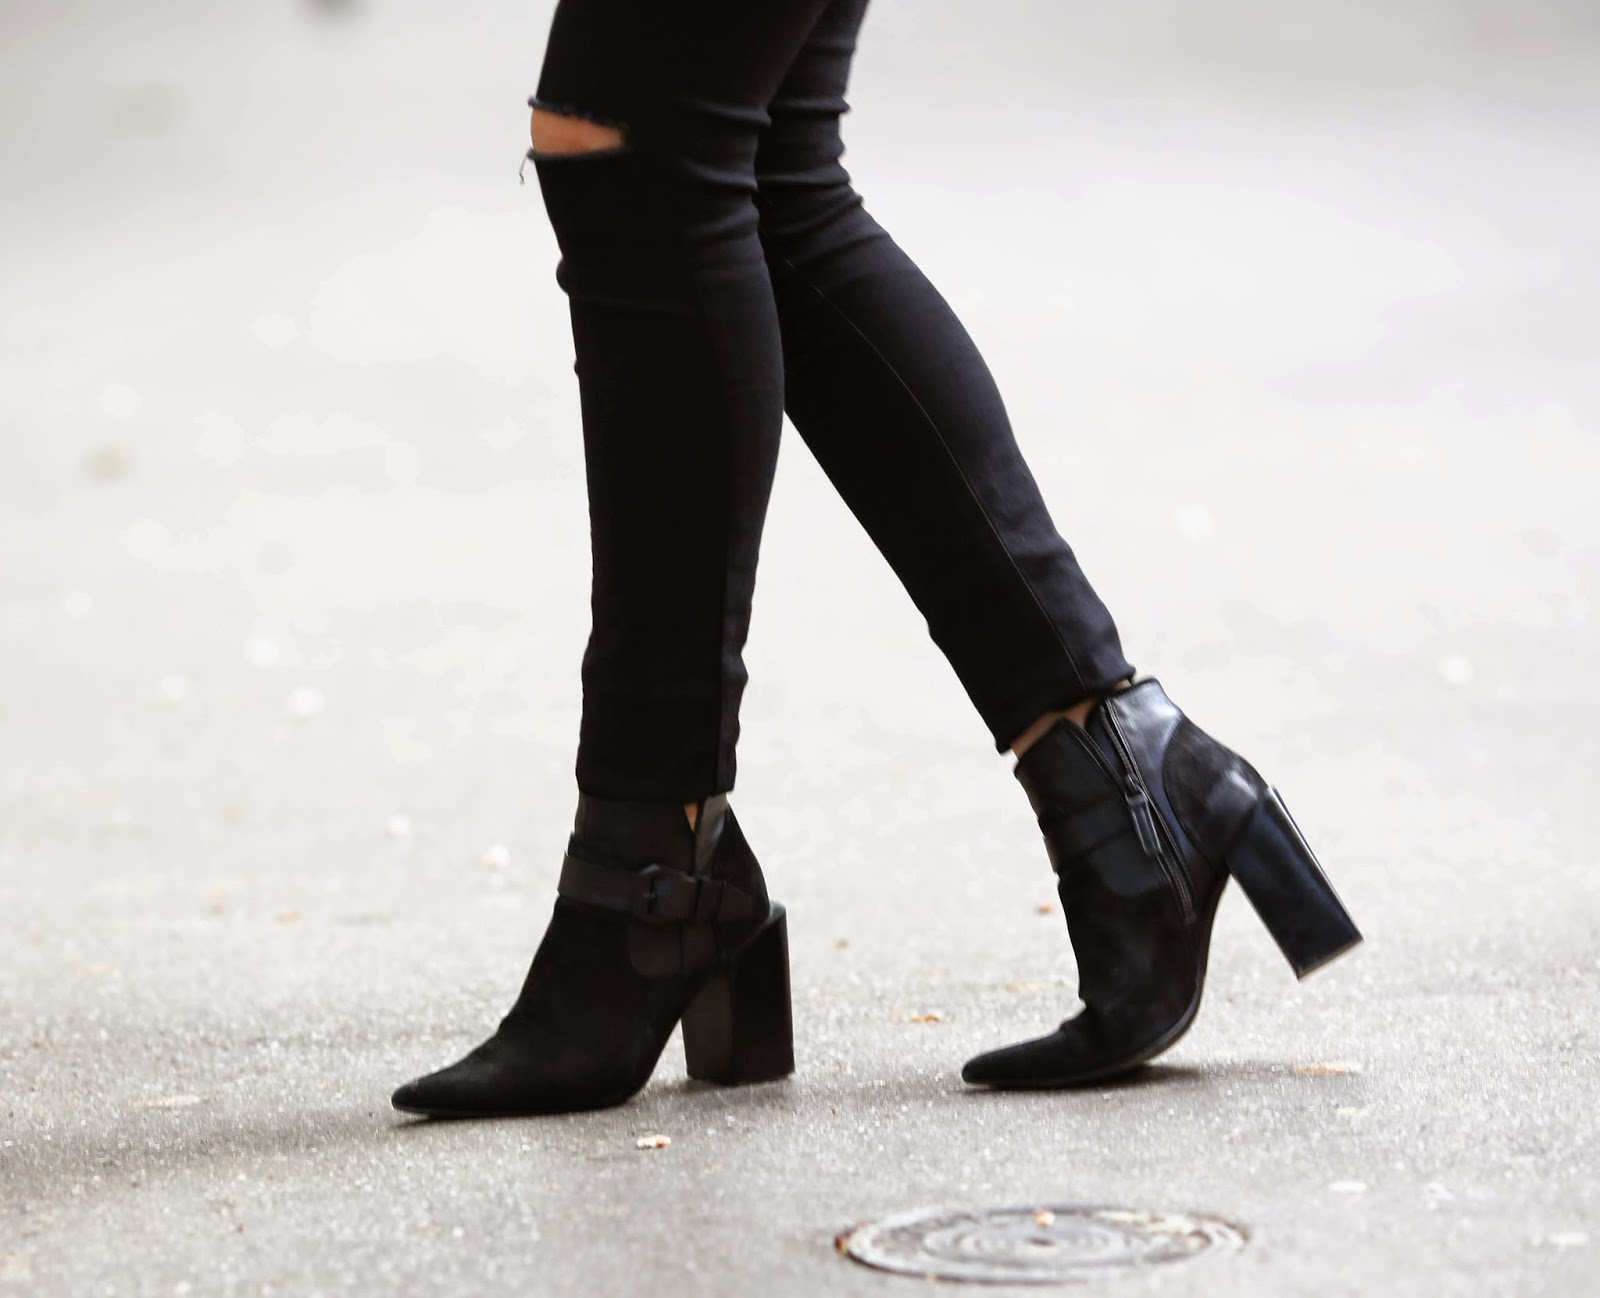 all black, senso, chloé, vanessa bruno, ripped jeans, paris, streetstyle, pardonmyobsession